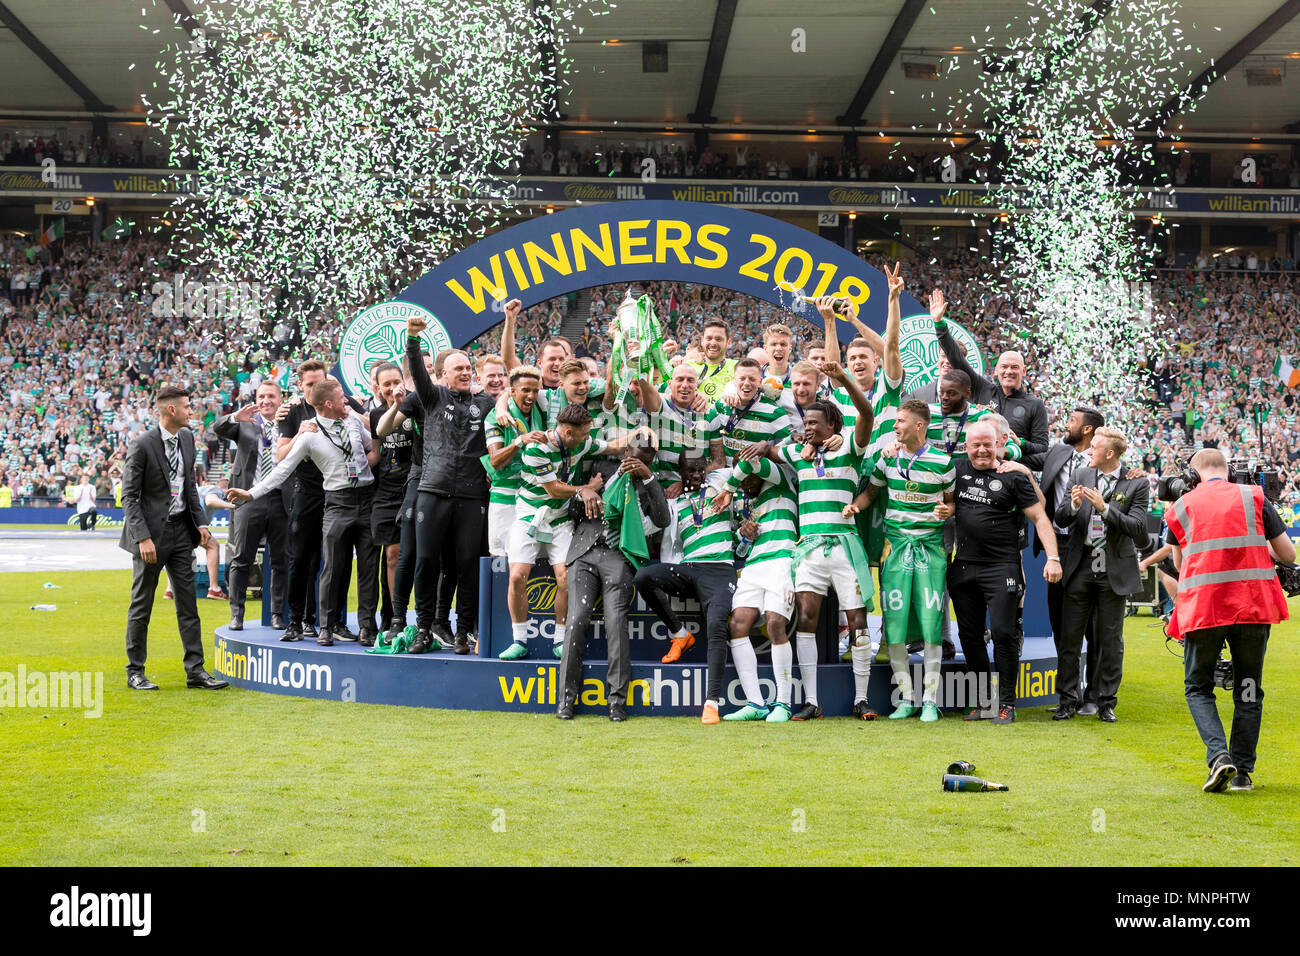 Hampden Park, Glasgow, UK. 19th May, 2018. Scottish Cup football final, Celtic versus Motherwell; Celtic squad celebrate at trophy presentation Credit: Action Plus Sports/Alamy Live News Stock Photo